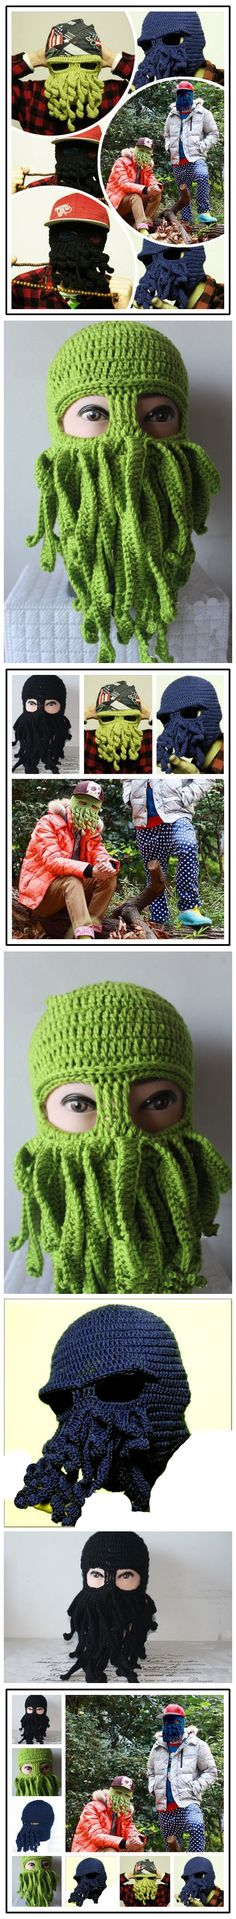 Unisex Halloween novelty Funny keep warm Knitted Octopus Mask Cap SKU:  FM10035 Price: $9.99